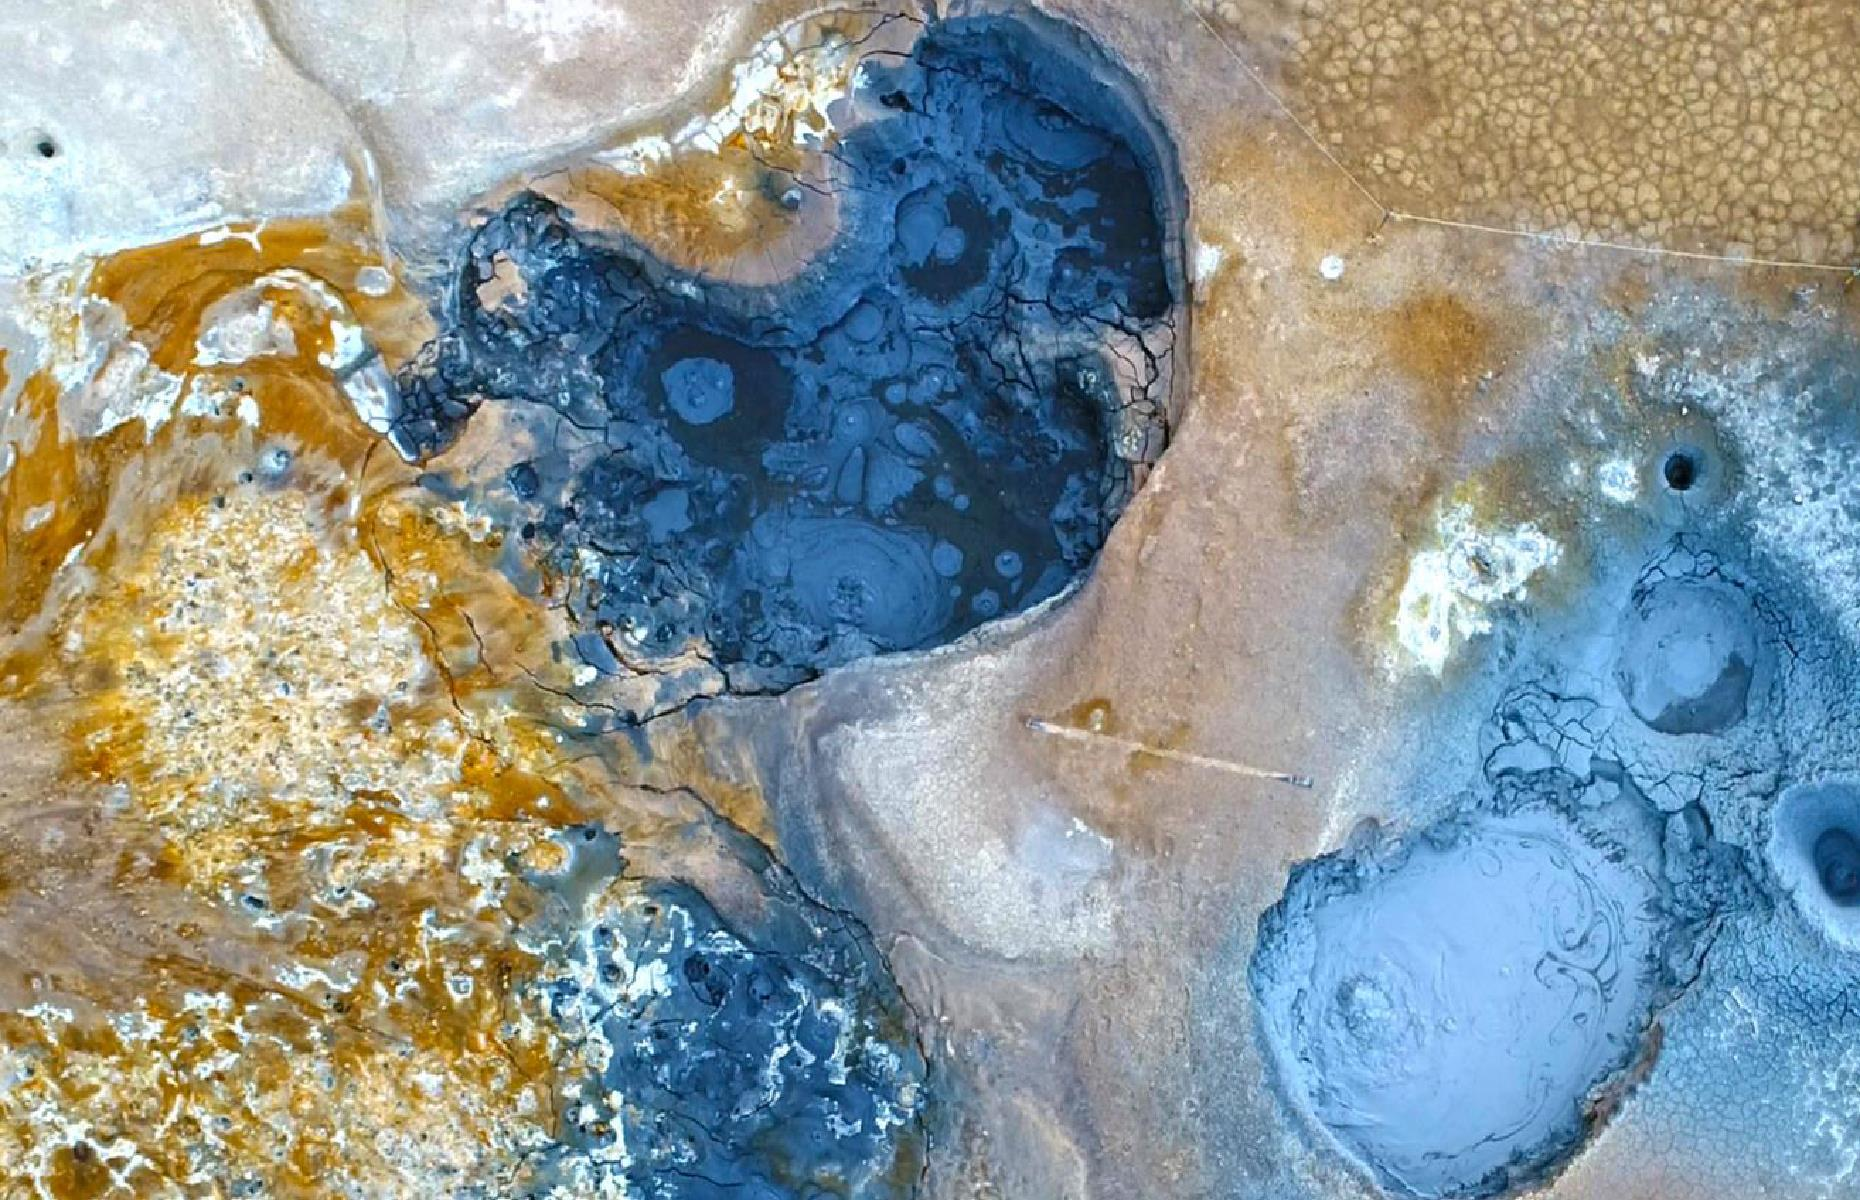 Slide 27 of 43: The Hverir Geothermal Area, part of North Iceland's so-called 'Diamond Circle', is a landscape filled with simmering mud pots and hissing hot springs. This eye-popping view from the sky shows the brilliant tones of blue and yellow, not too dissimilar to the USA's famous Grand Prismatic Spring.